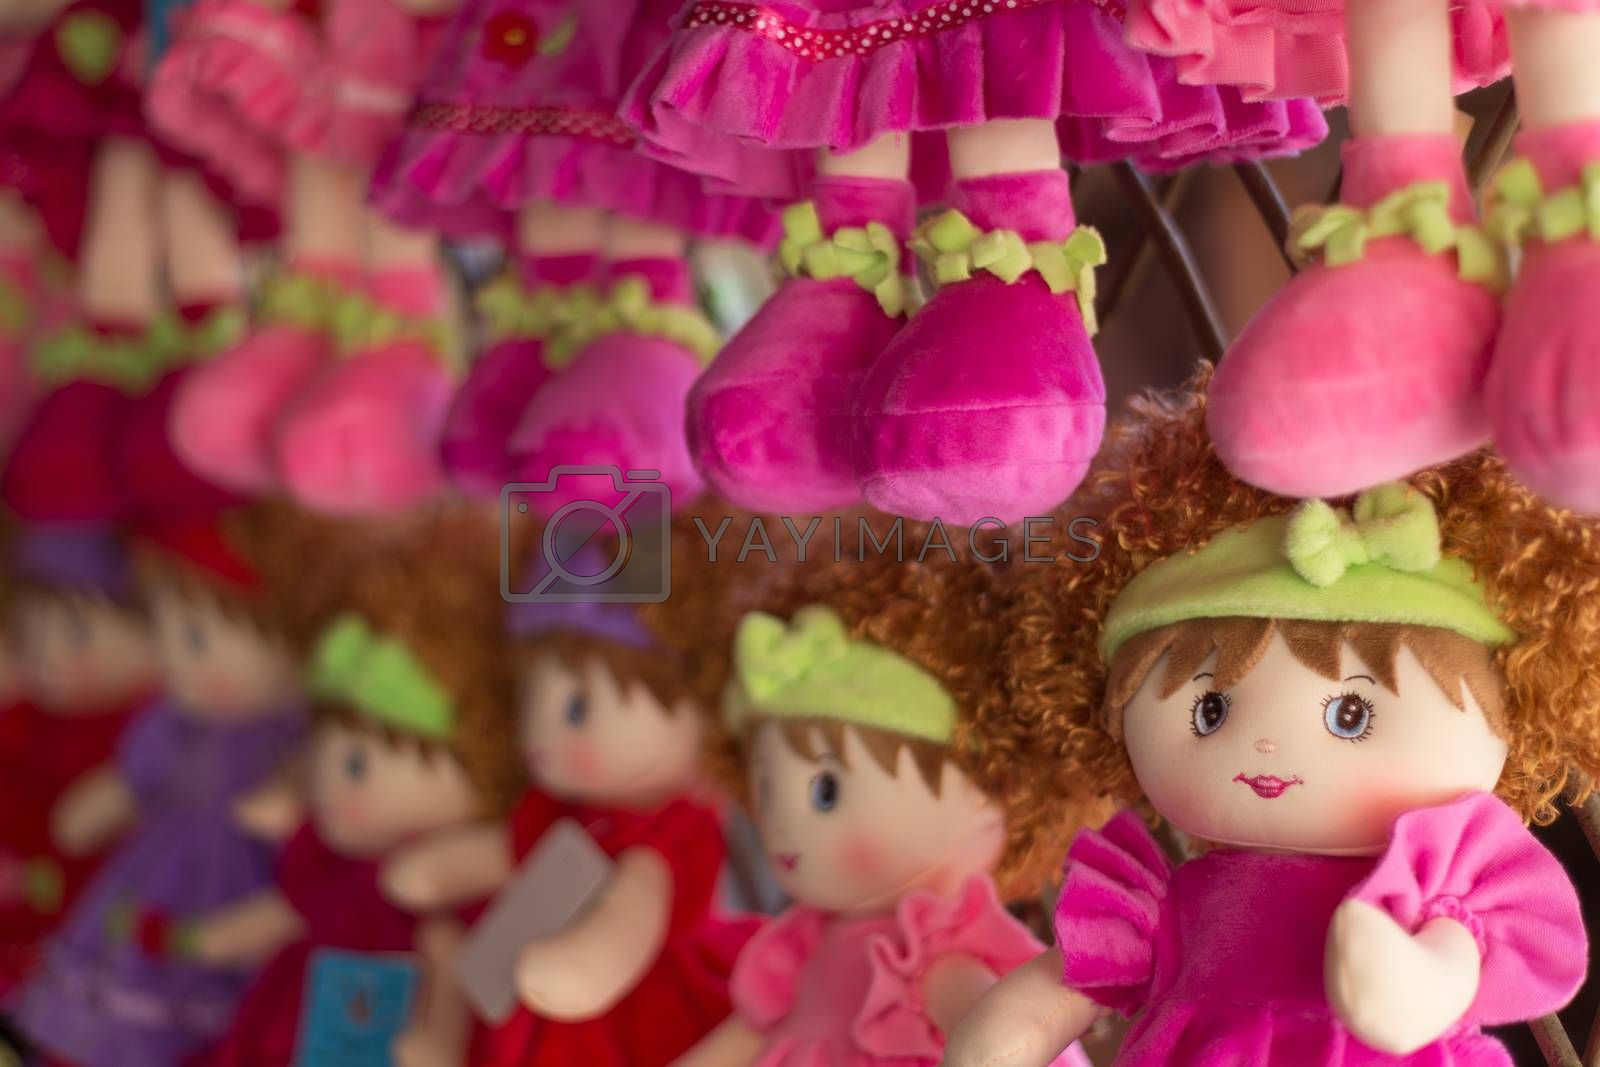 Wool doll, a perfect gift for a kid